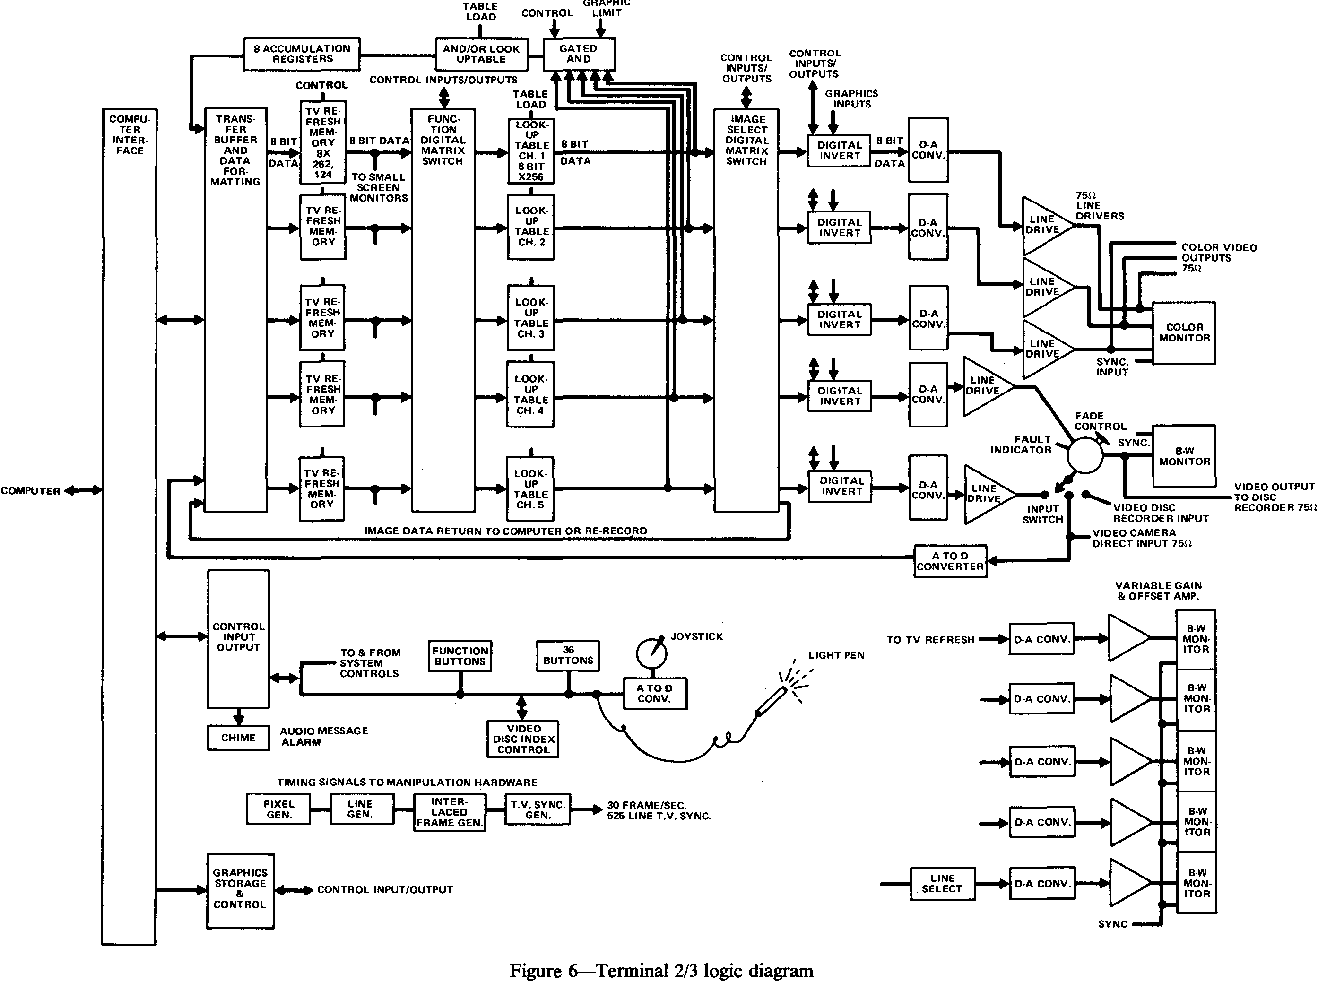 Figure 6 From Aoips An Interactive Image Processing System Logic Diagram And Or Tenninal 2 3